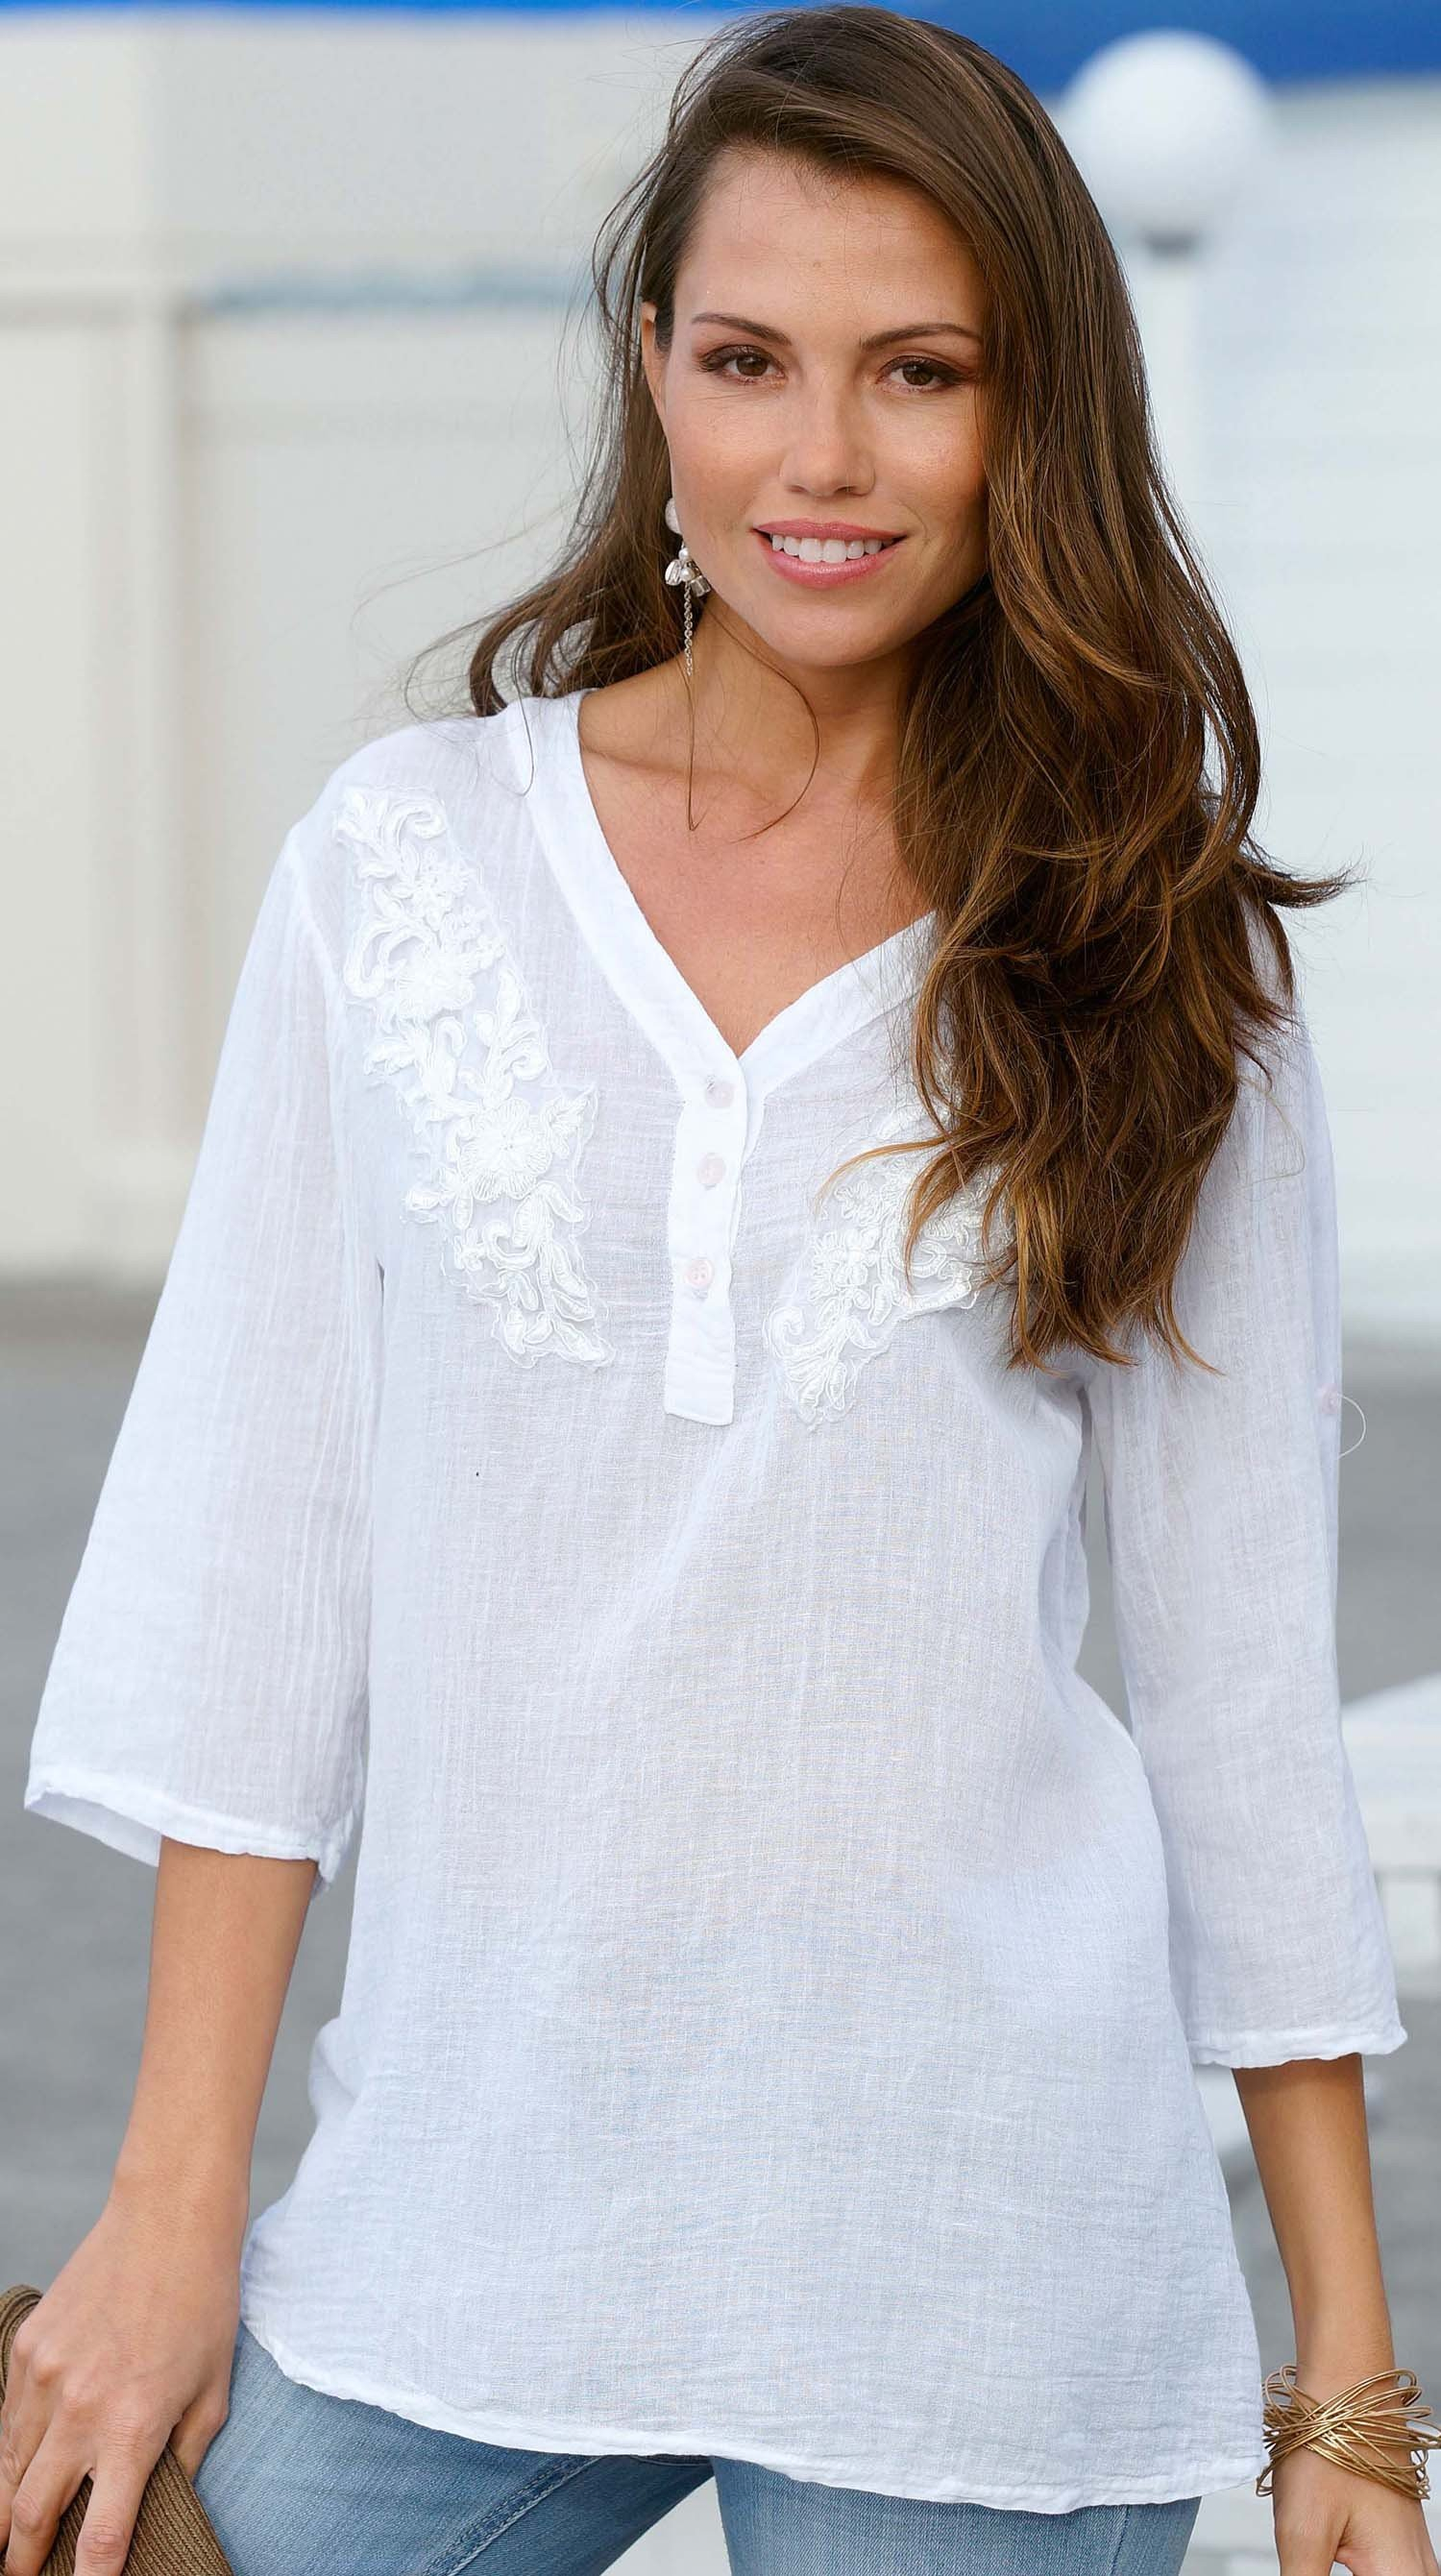 D-3/4-Blusen-Top,Floral weiss M 001 - 1 - Ronja.ch